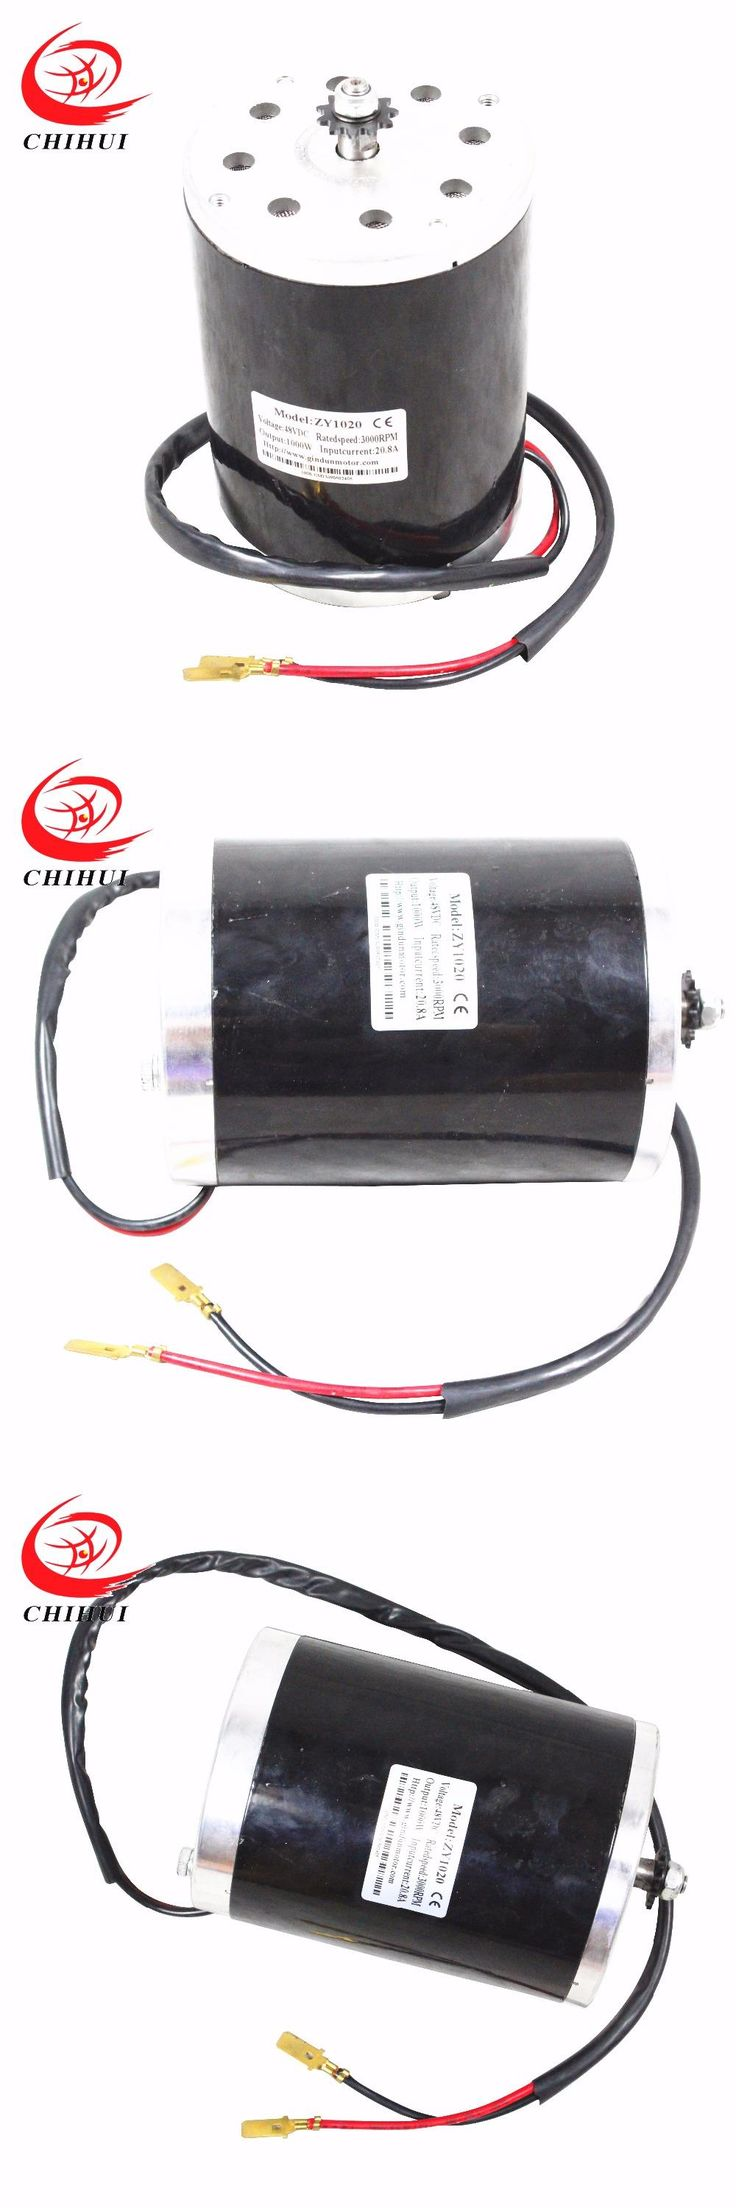 [Visit to Buy] Electric Scooter Motors 1000W 48V Brushed Electric DC Motor(Scooter Parts & Accessories  ) #Advertisement